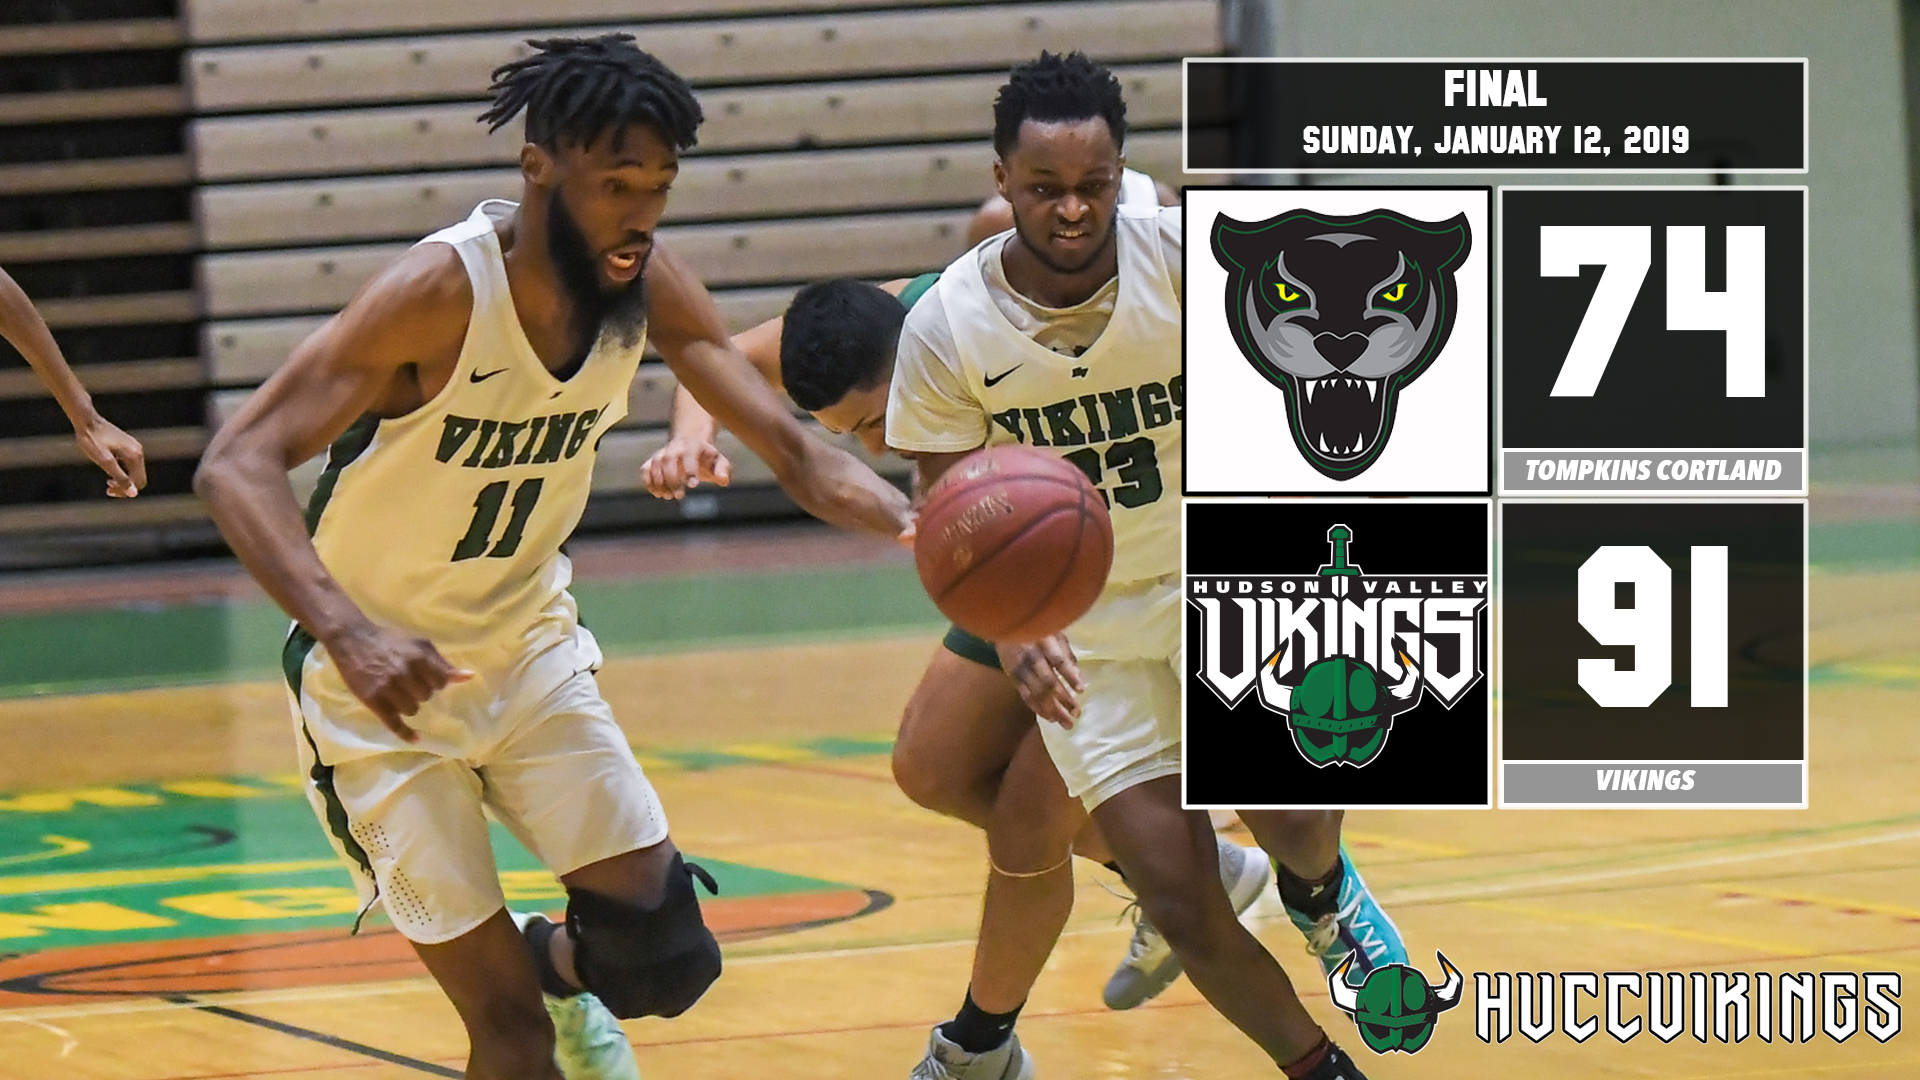 Men's basketball defeats Tompkins Cortland 91-74 on Jan. 12, 2019.